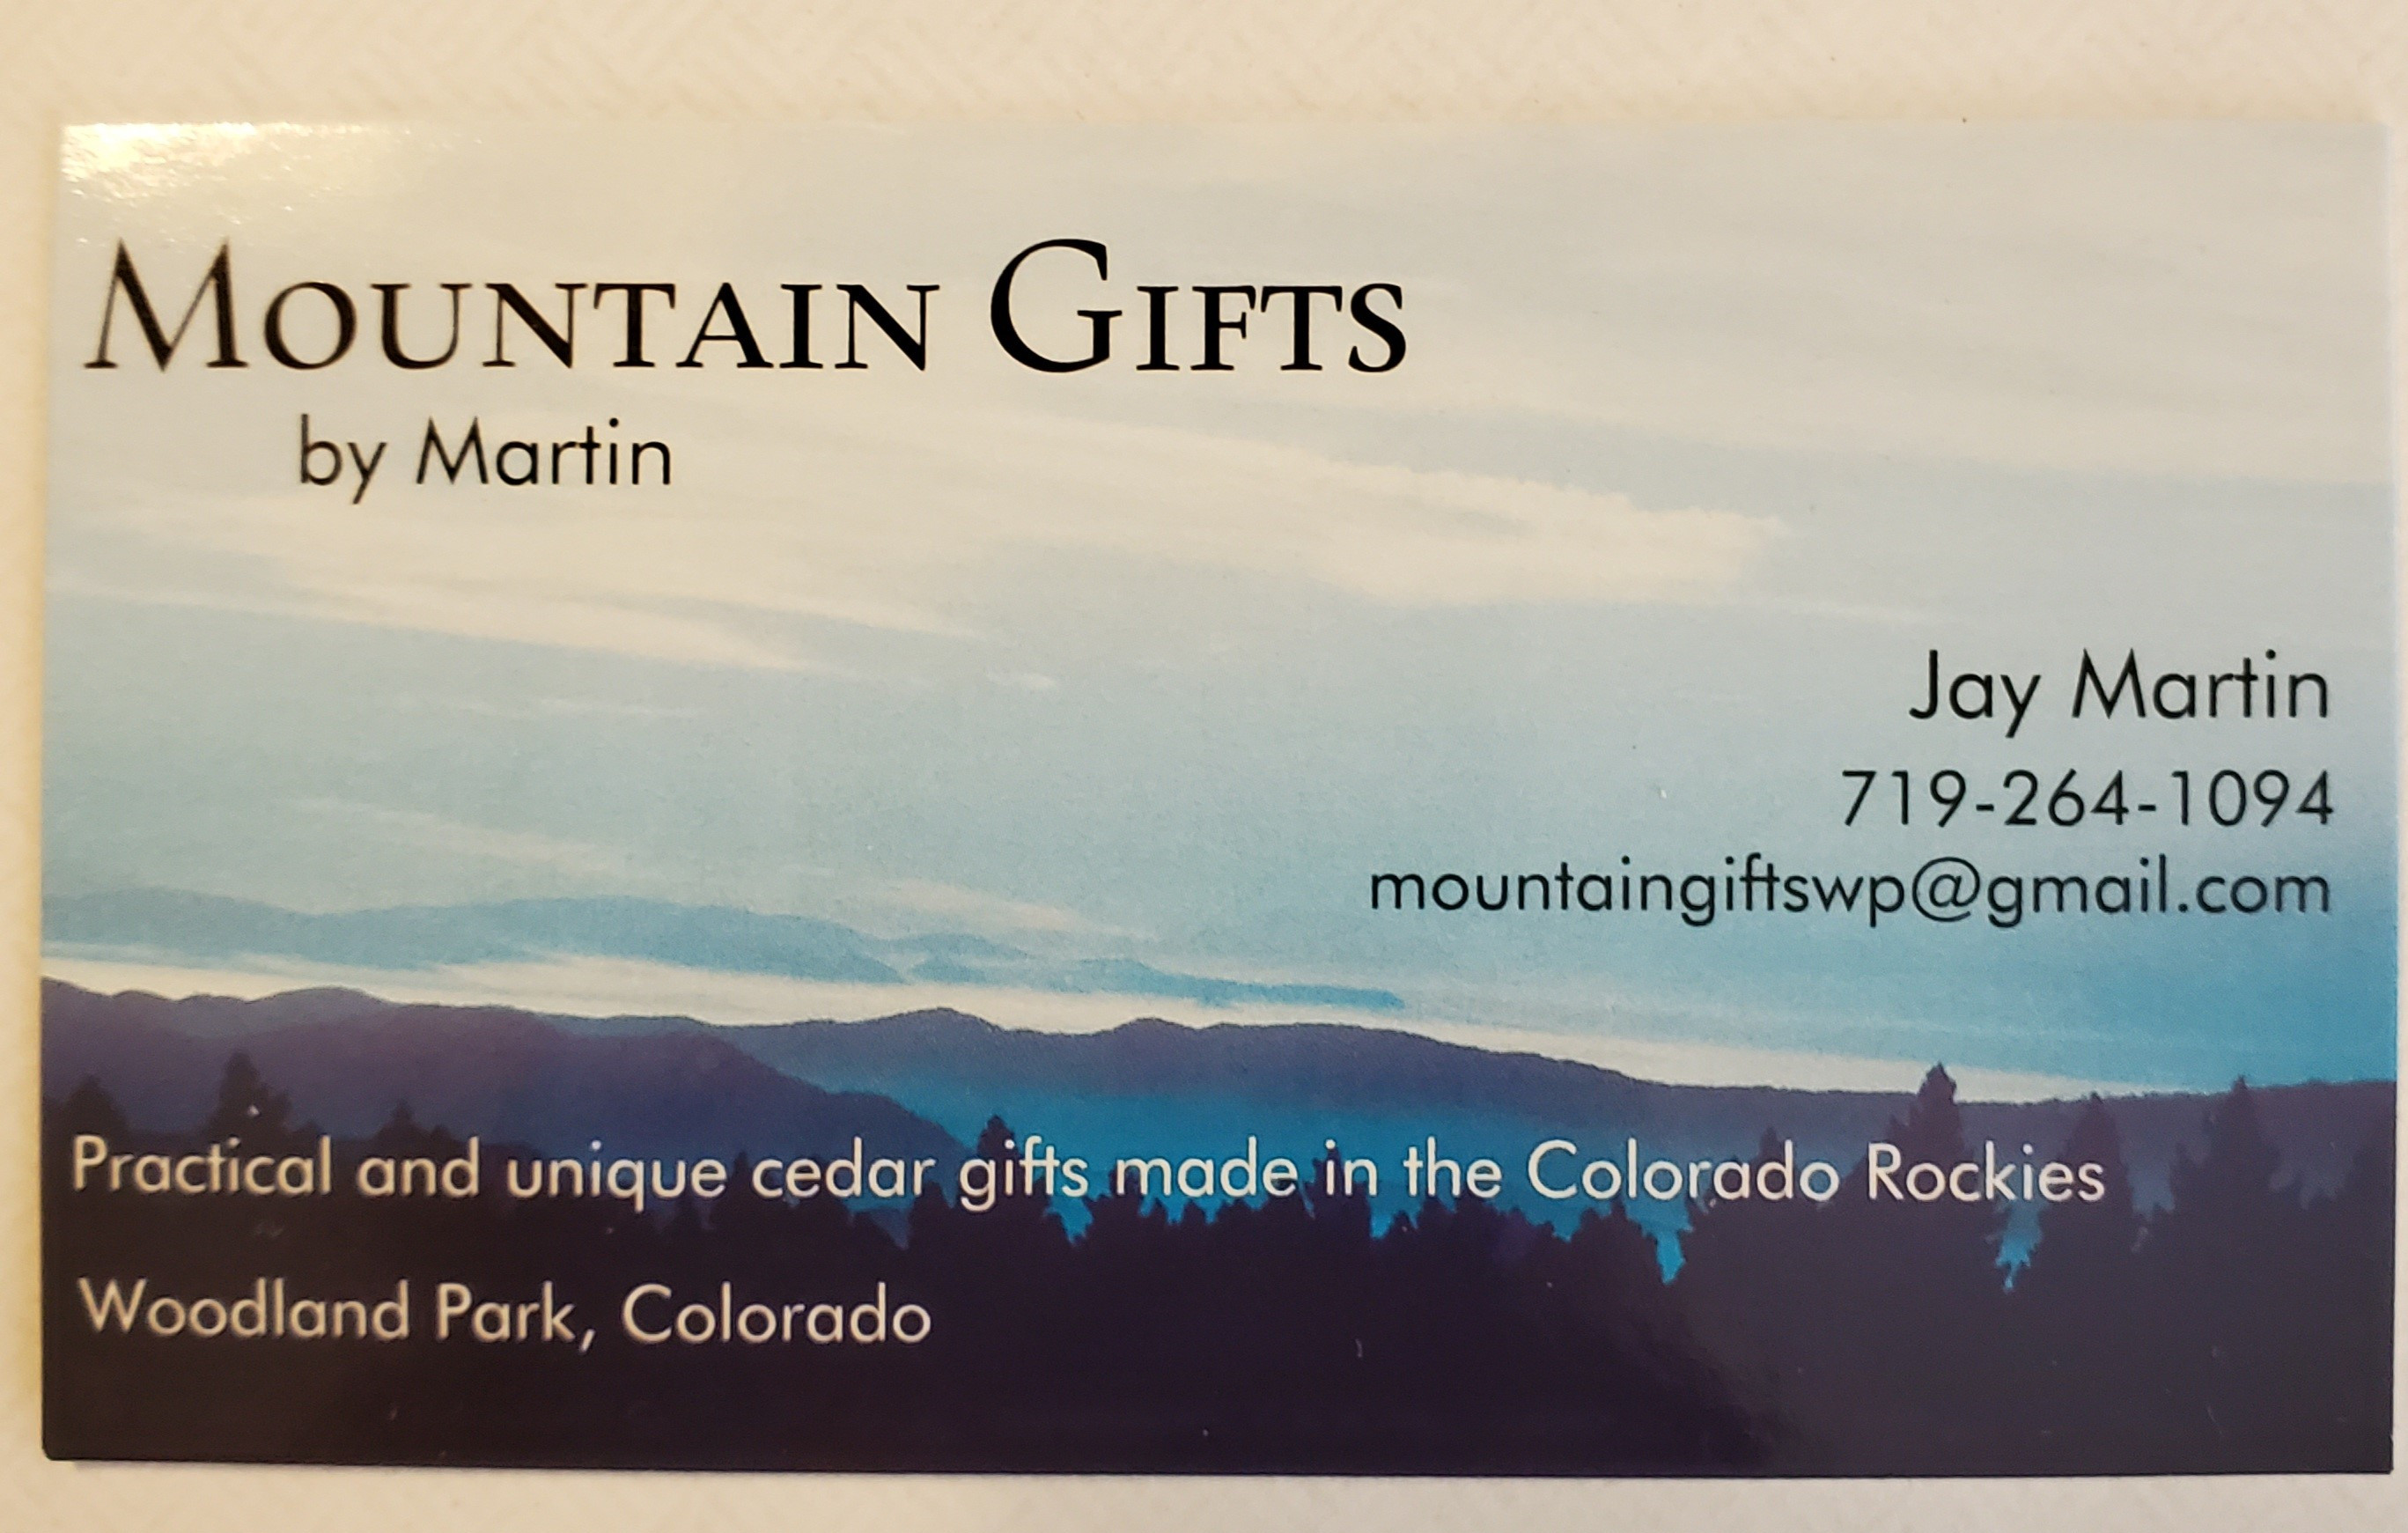 Mountain Gifts by Martin